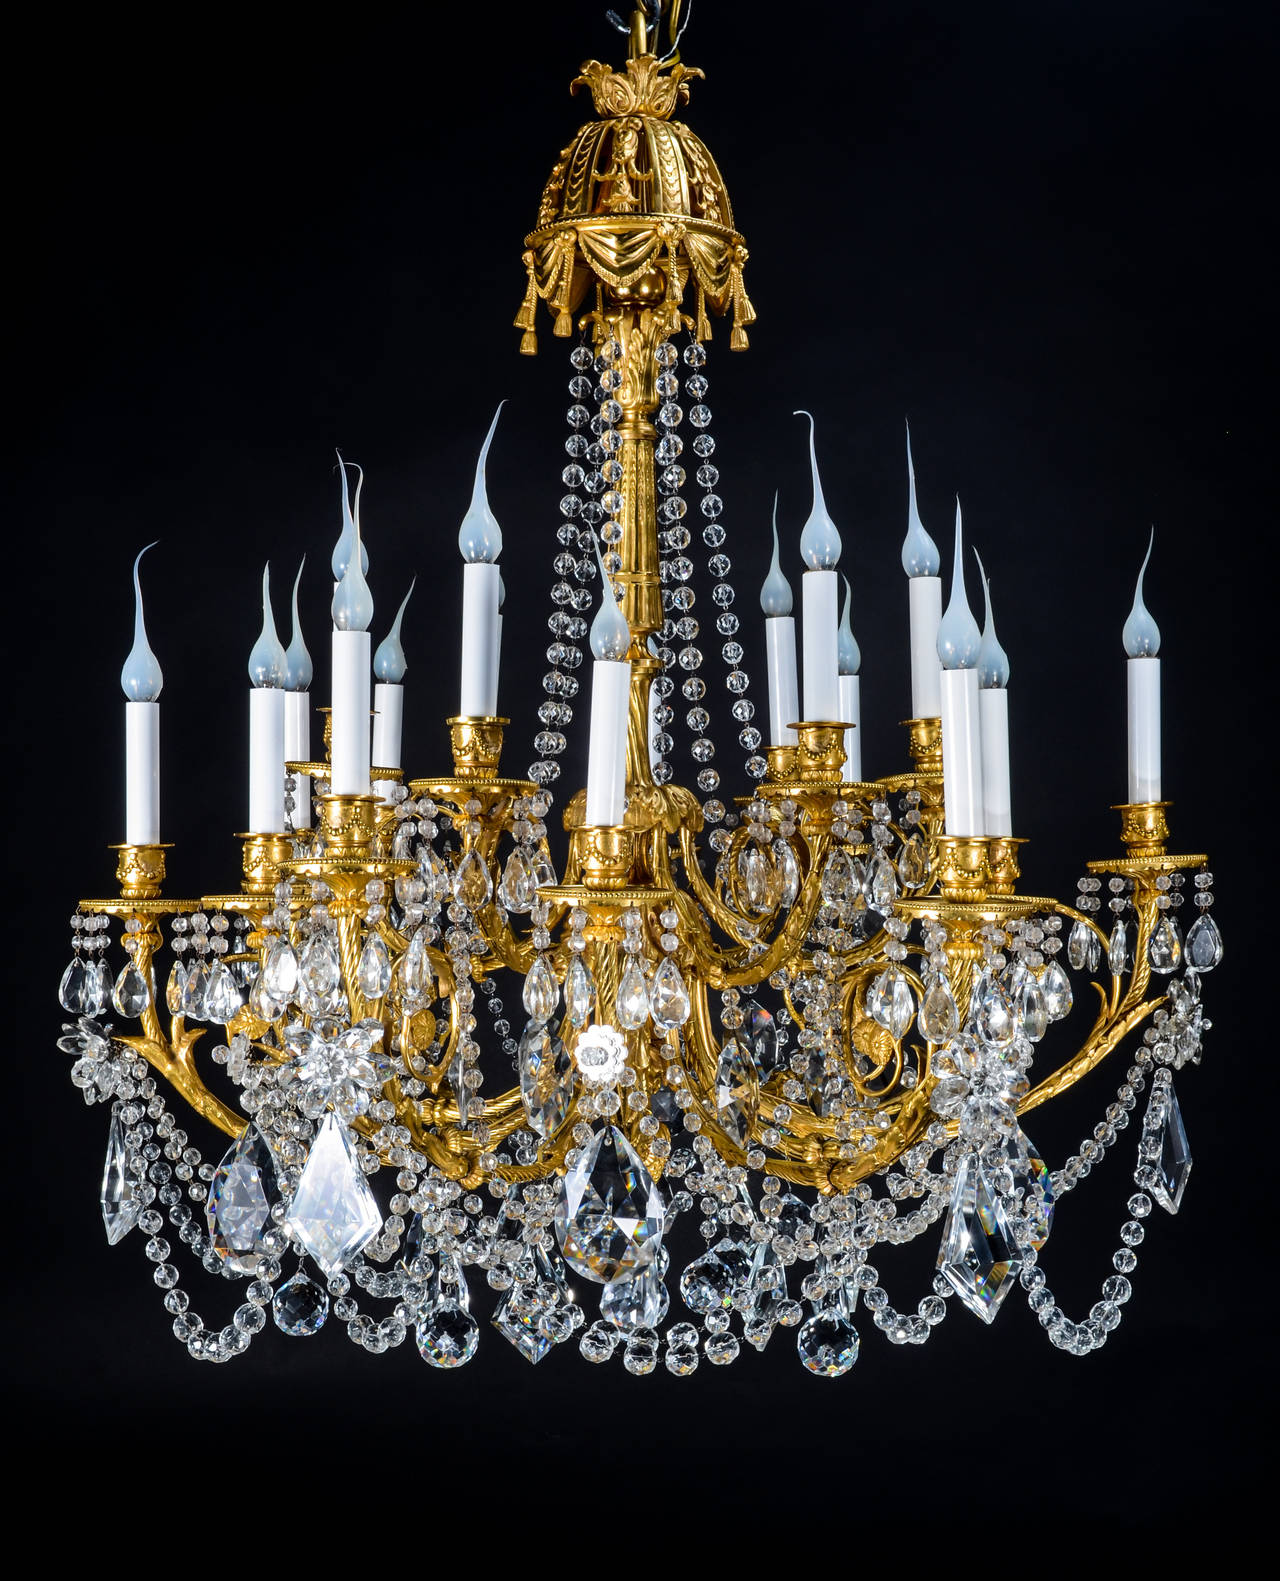 Superb Antique French Louis XVI Style Gilt Bronze and Crystal